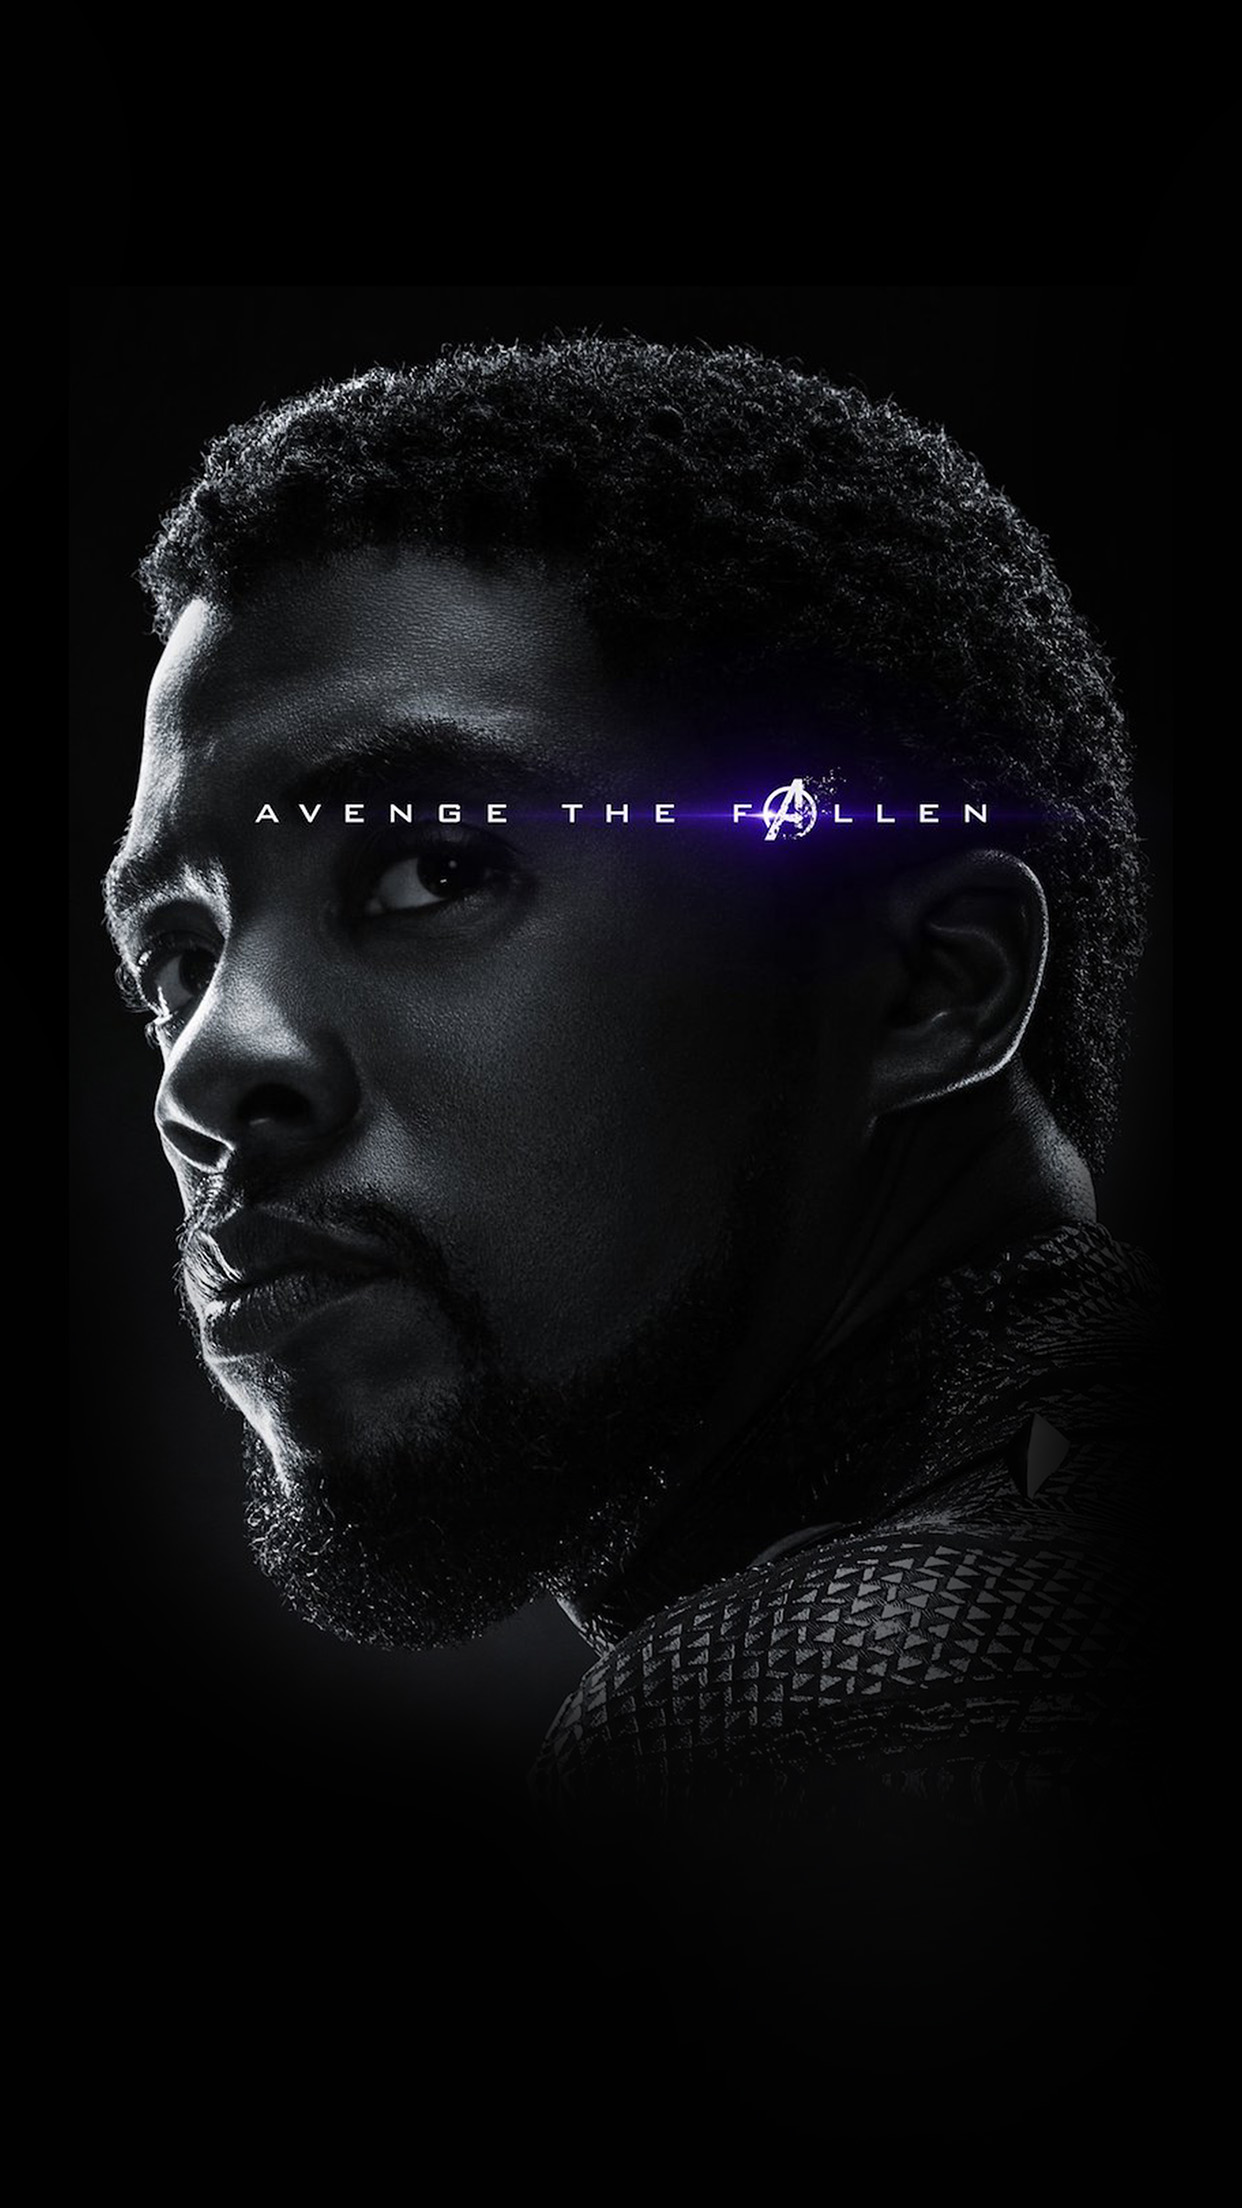 Iphonexpapers Com Iphone X Wallpaper Bi33 Avengers Poster Wakanda Hero Endgame Marvel Blackpanther Art